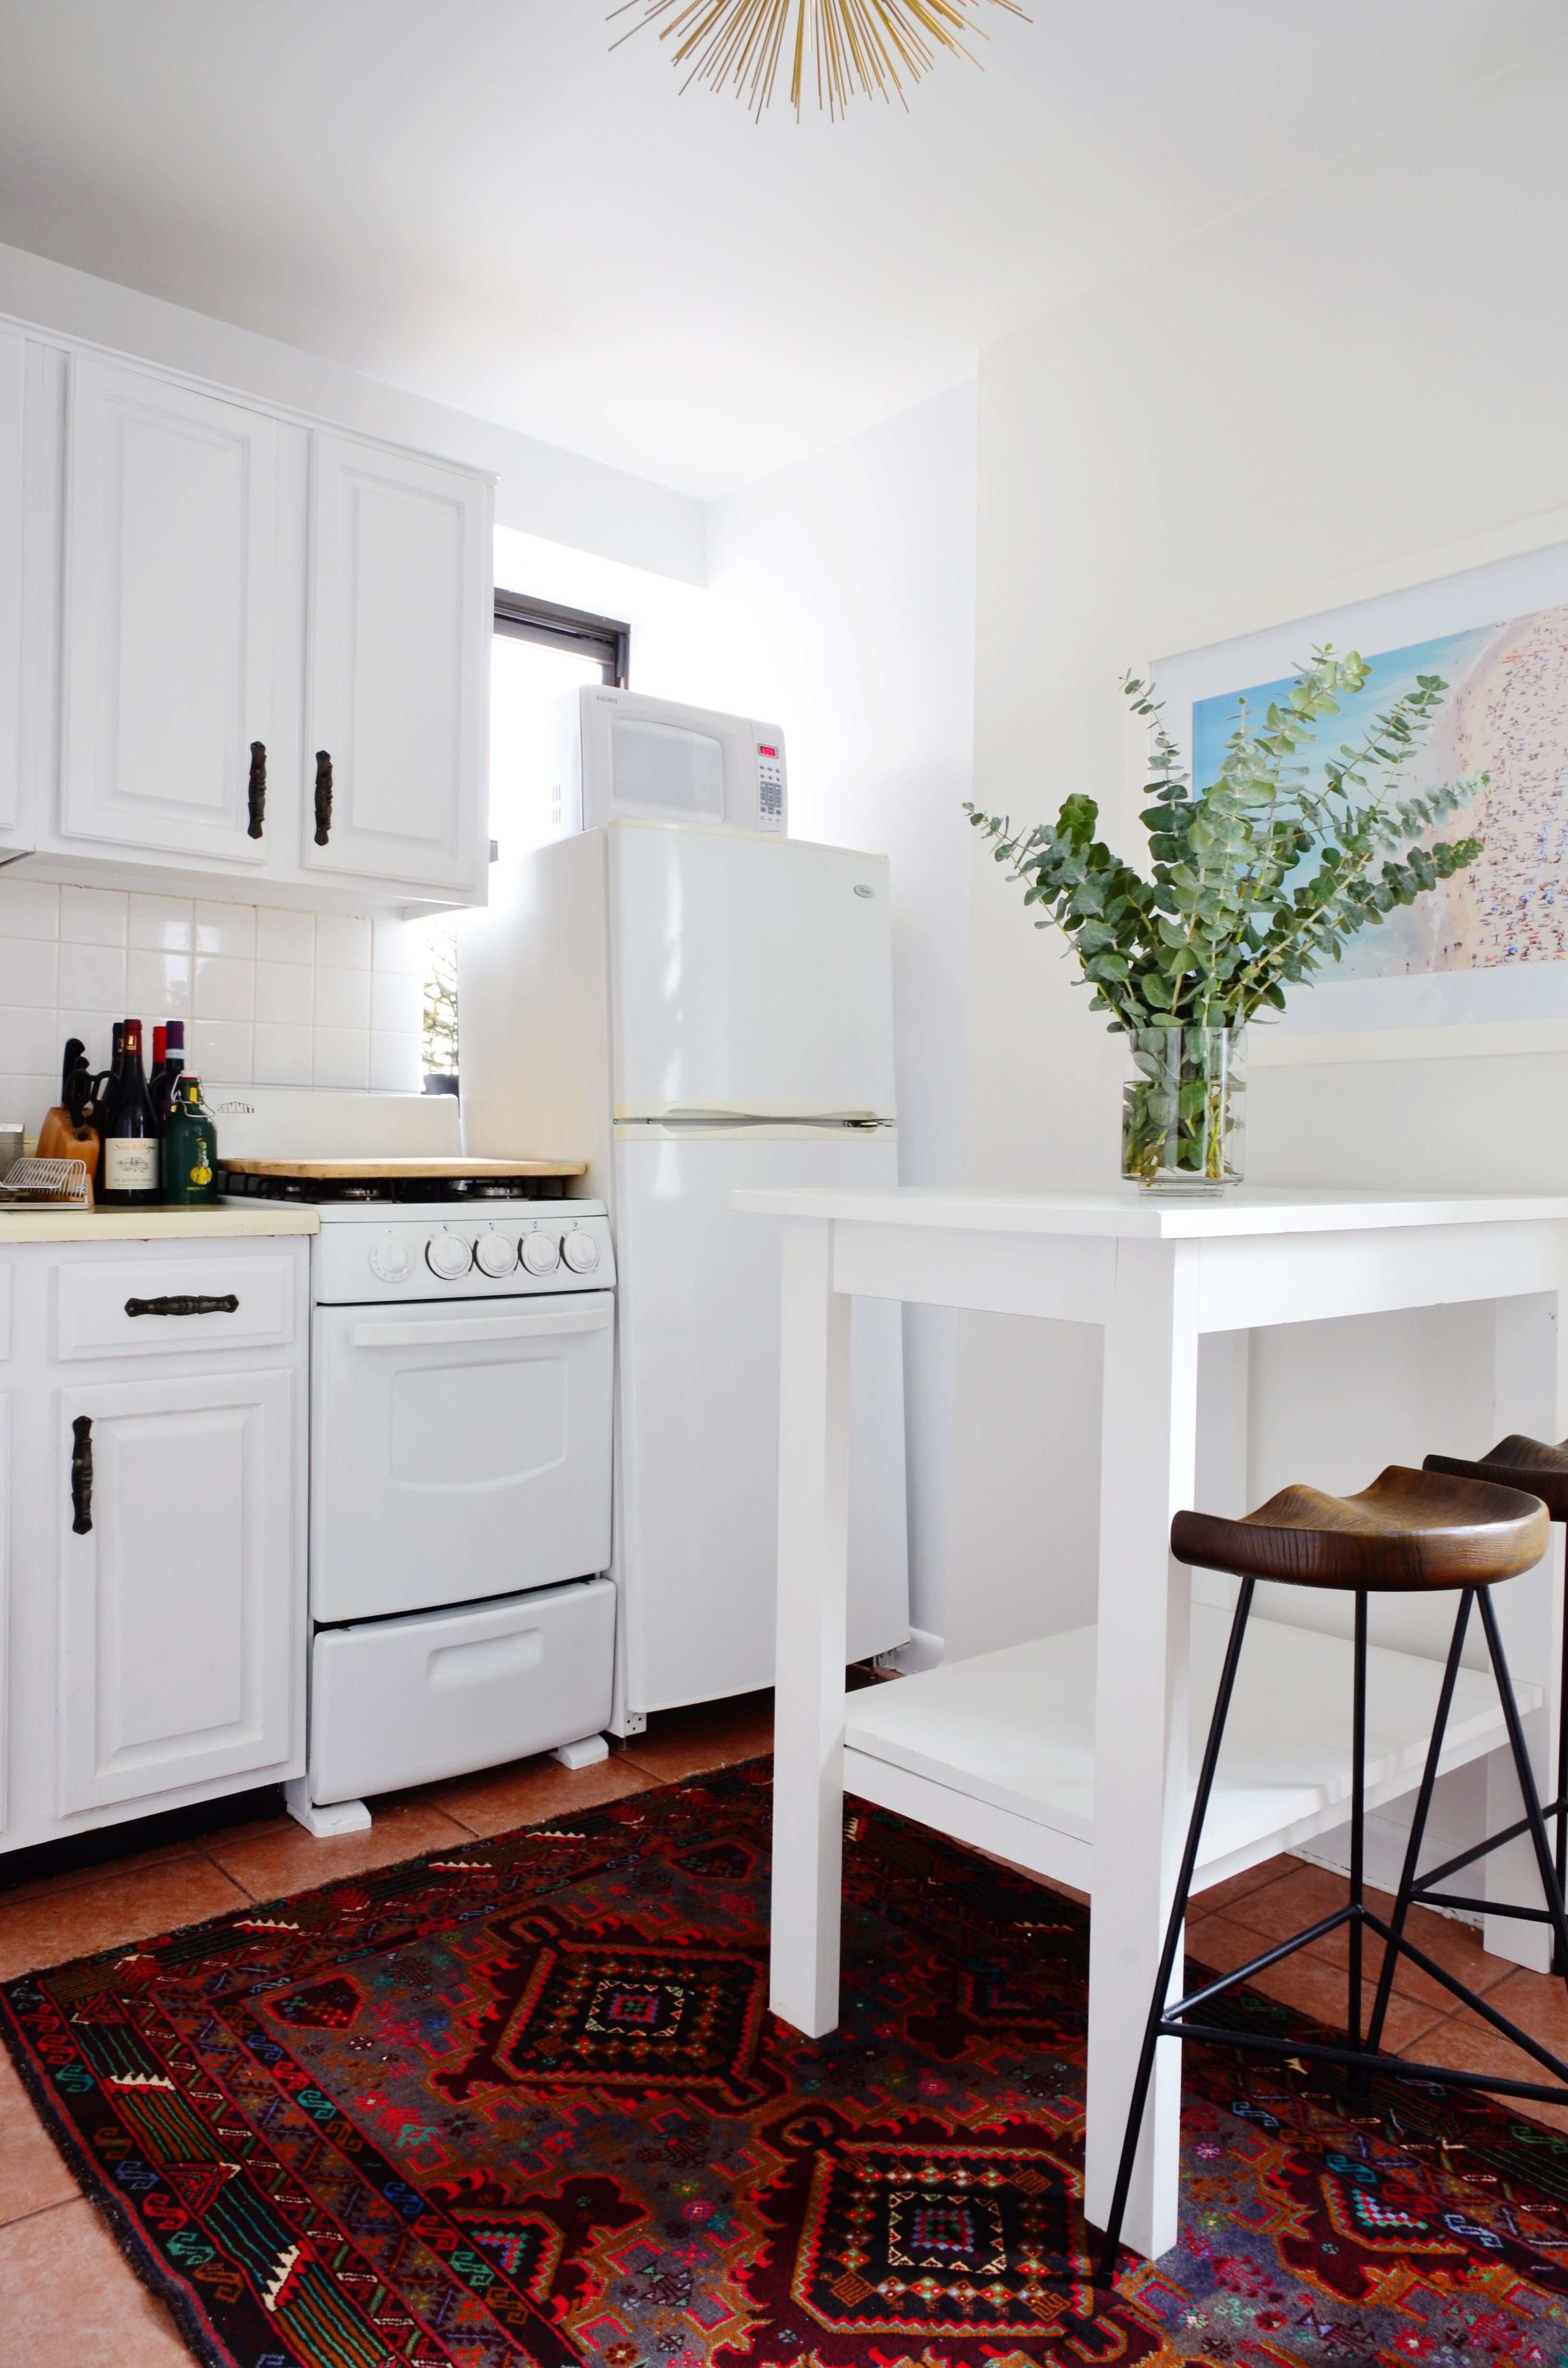 The Very Best Ideas from Super Small, Stylish Kitchens | Kitchens ...